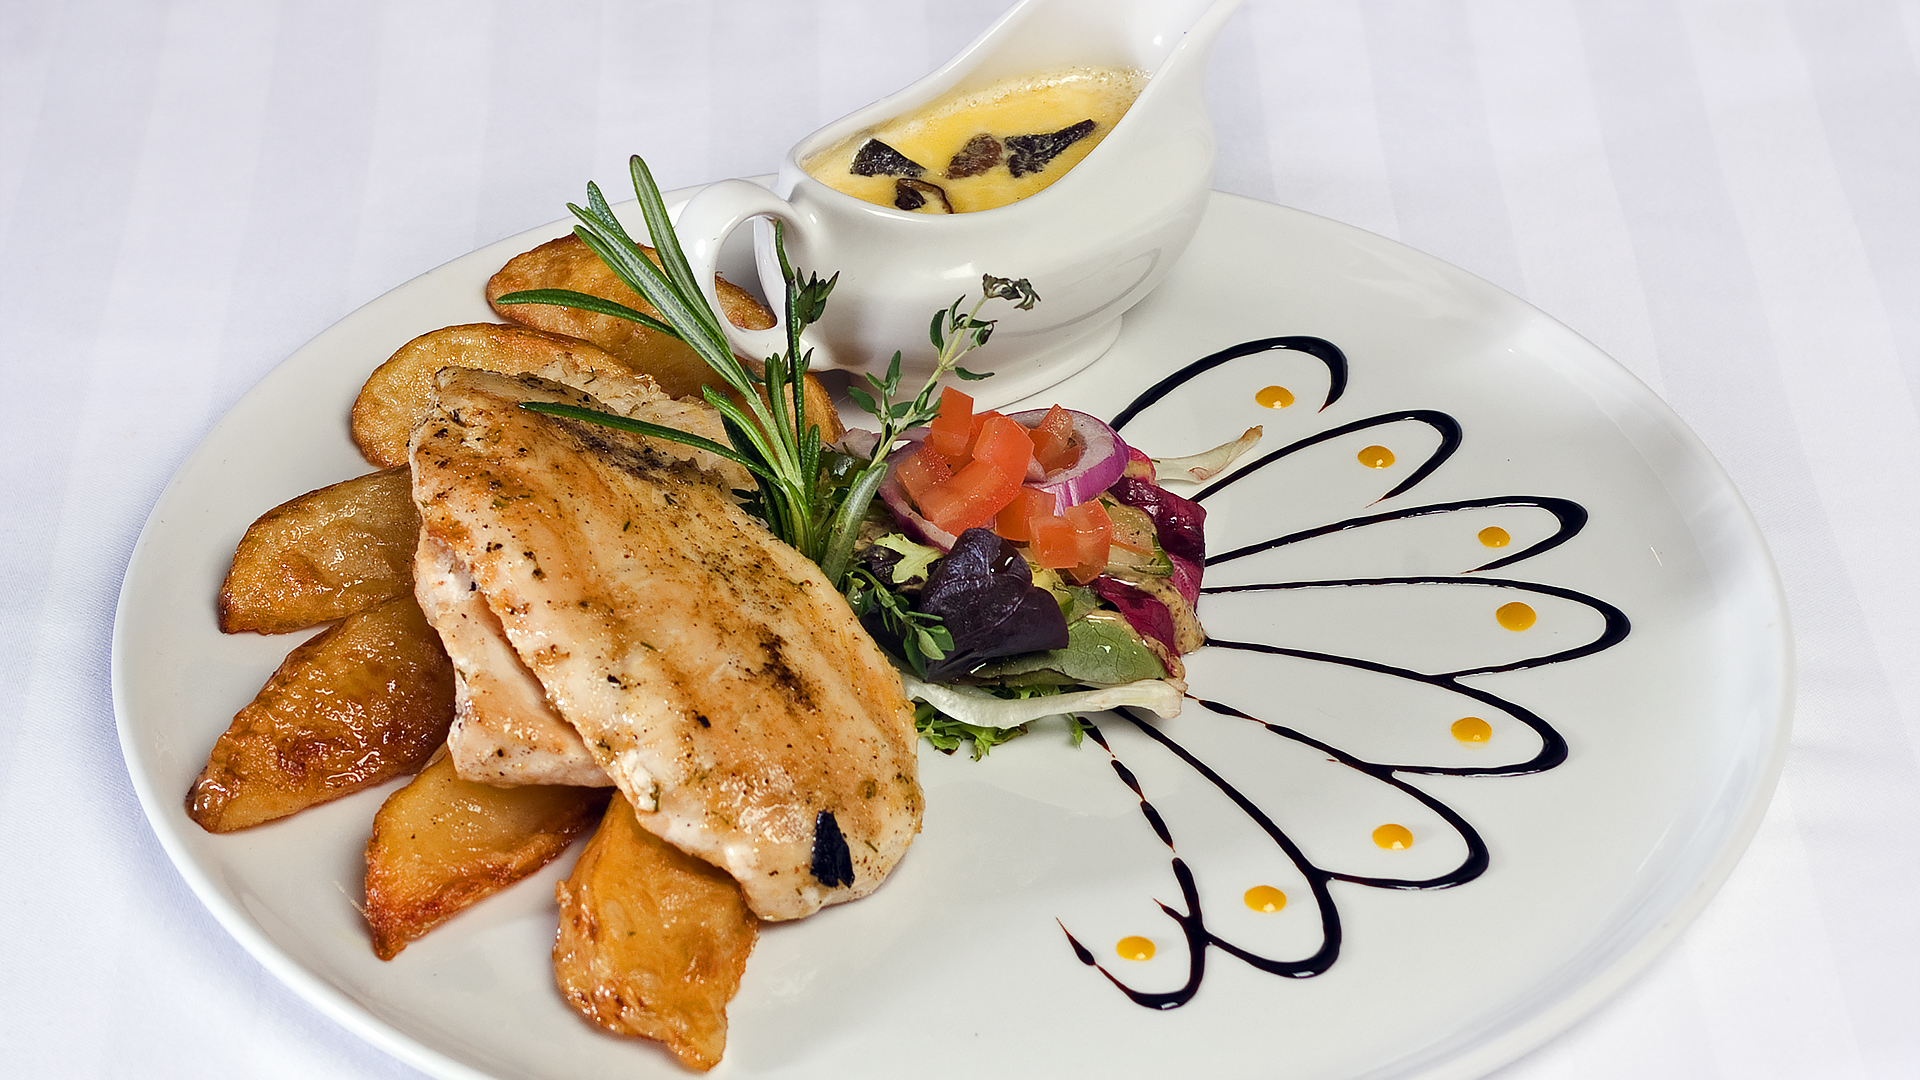 White House Chicken Nouveau Cuisine Food Image